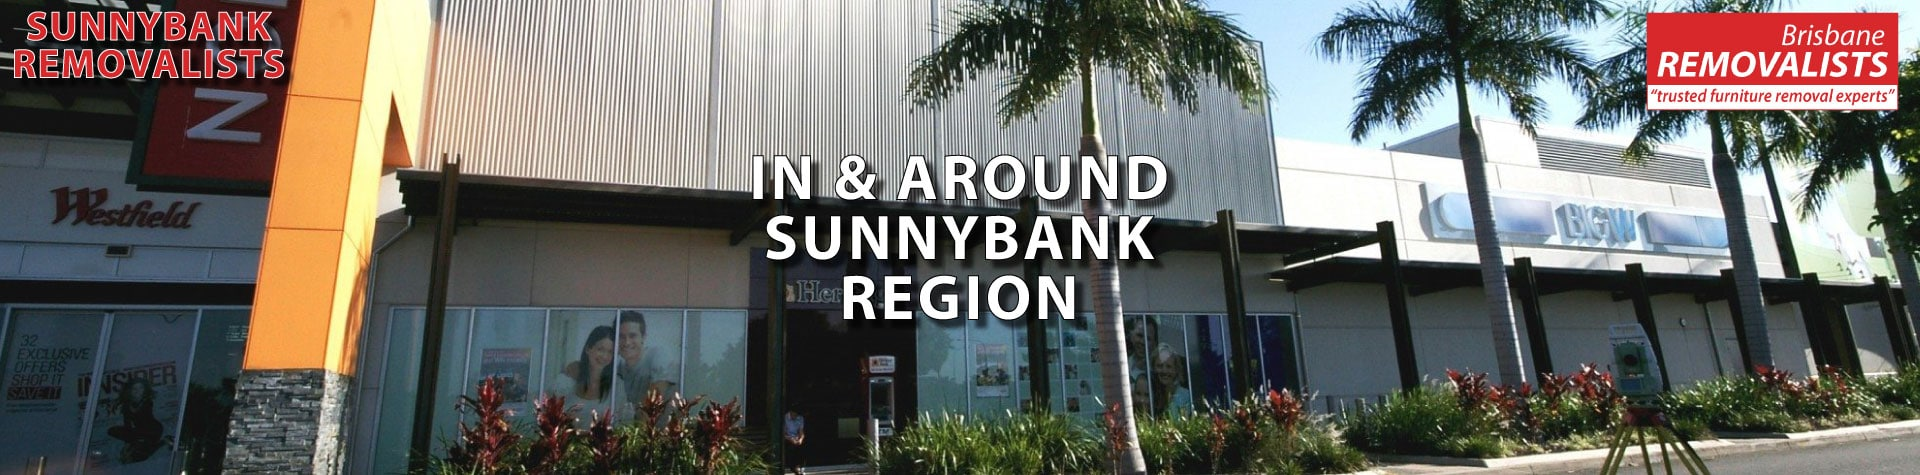 Sunnybank Removalists, professionally trained removalists premium furniture movers feature image